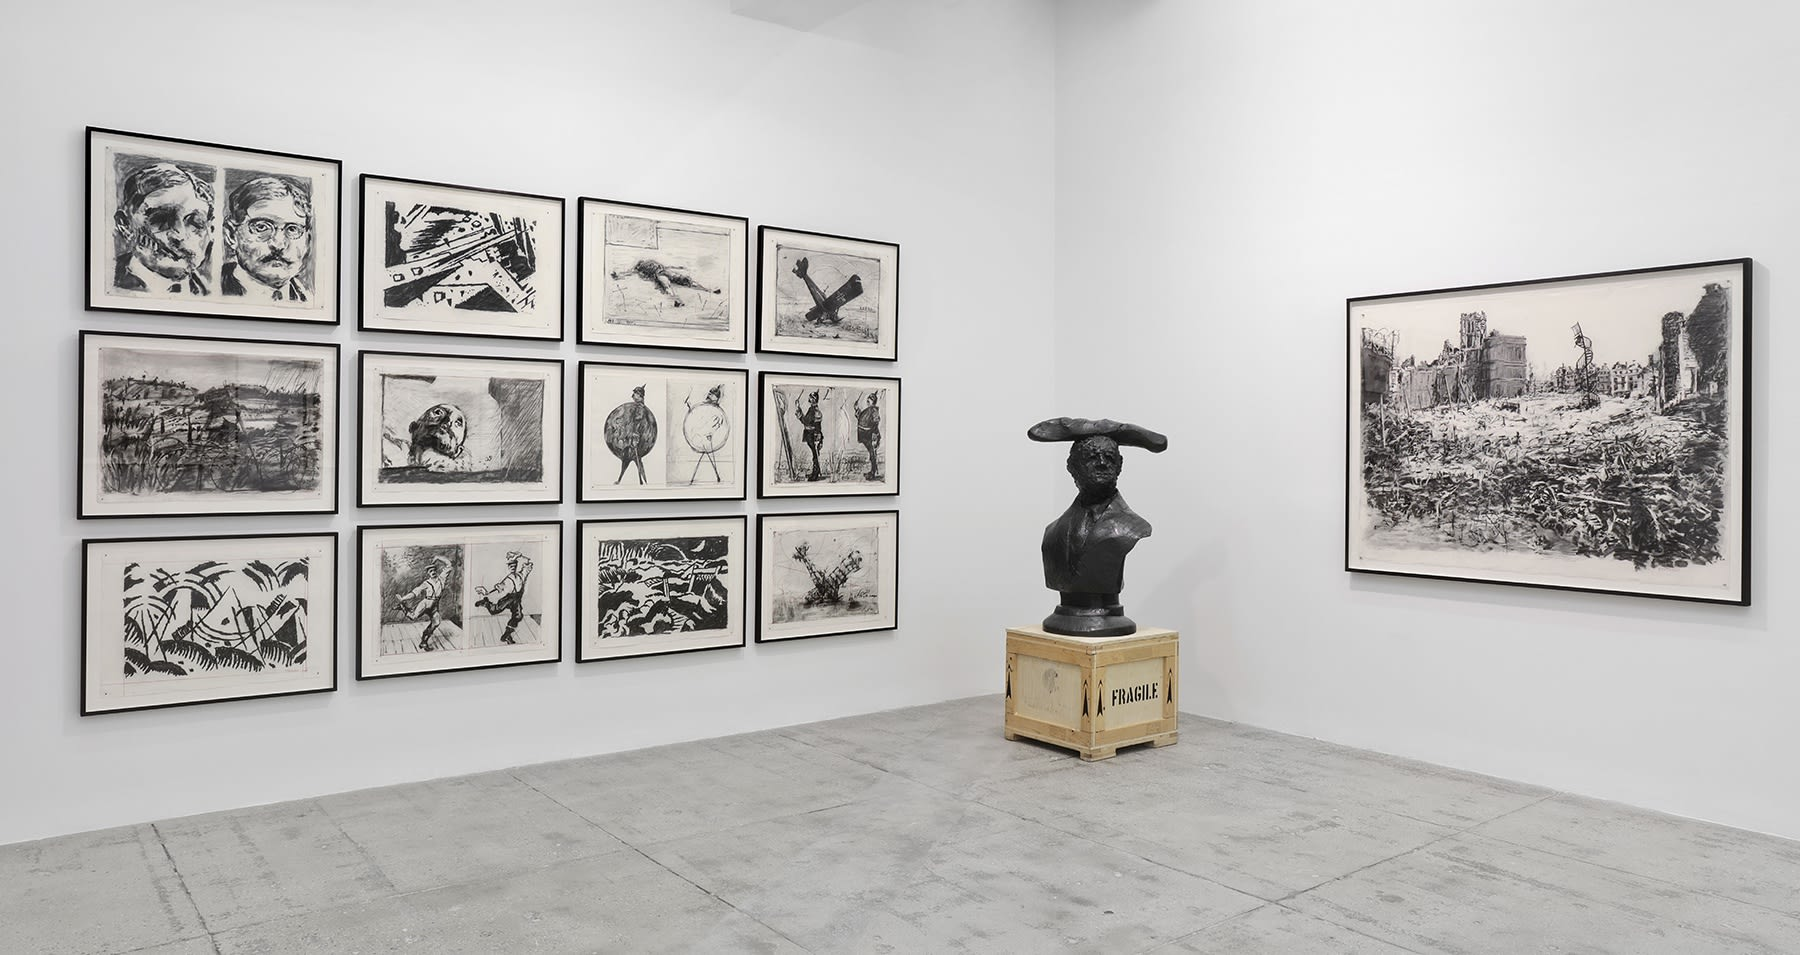 A copper sculpture of the bust of an unknown man stands between graphite drawings of war-torn landscapes, crashing airplanes, dancing men and injured figures.